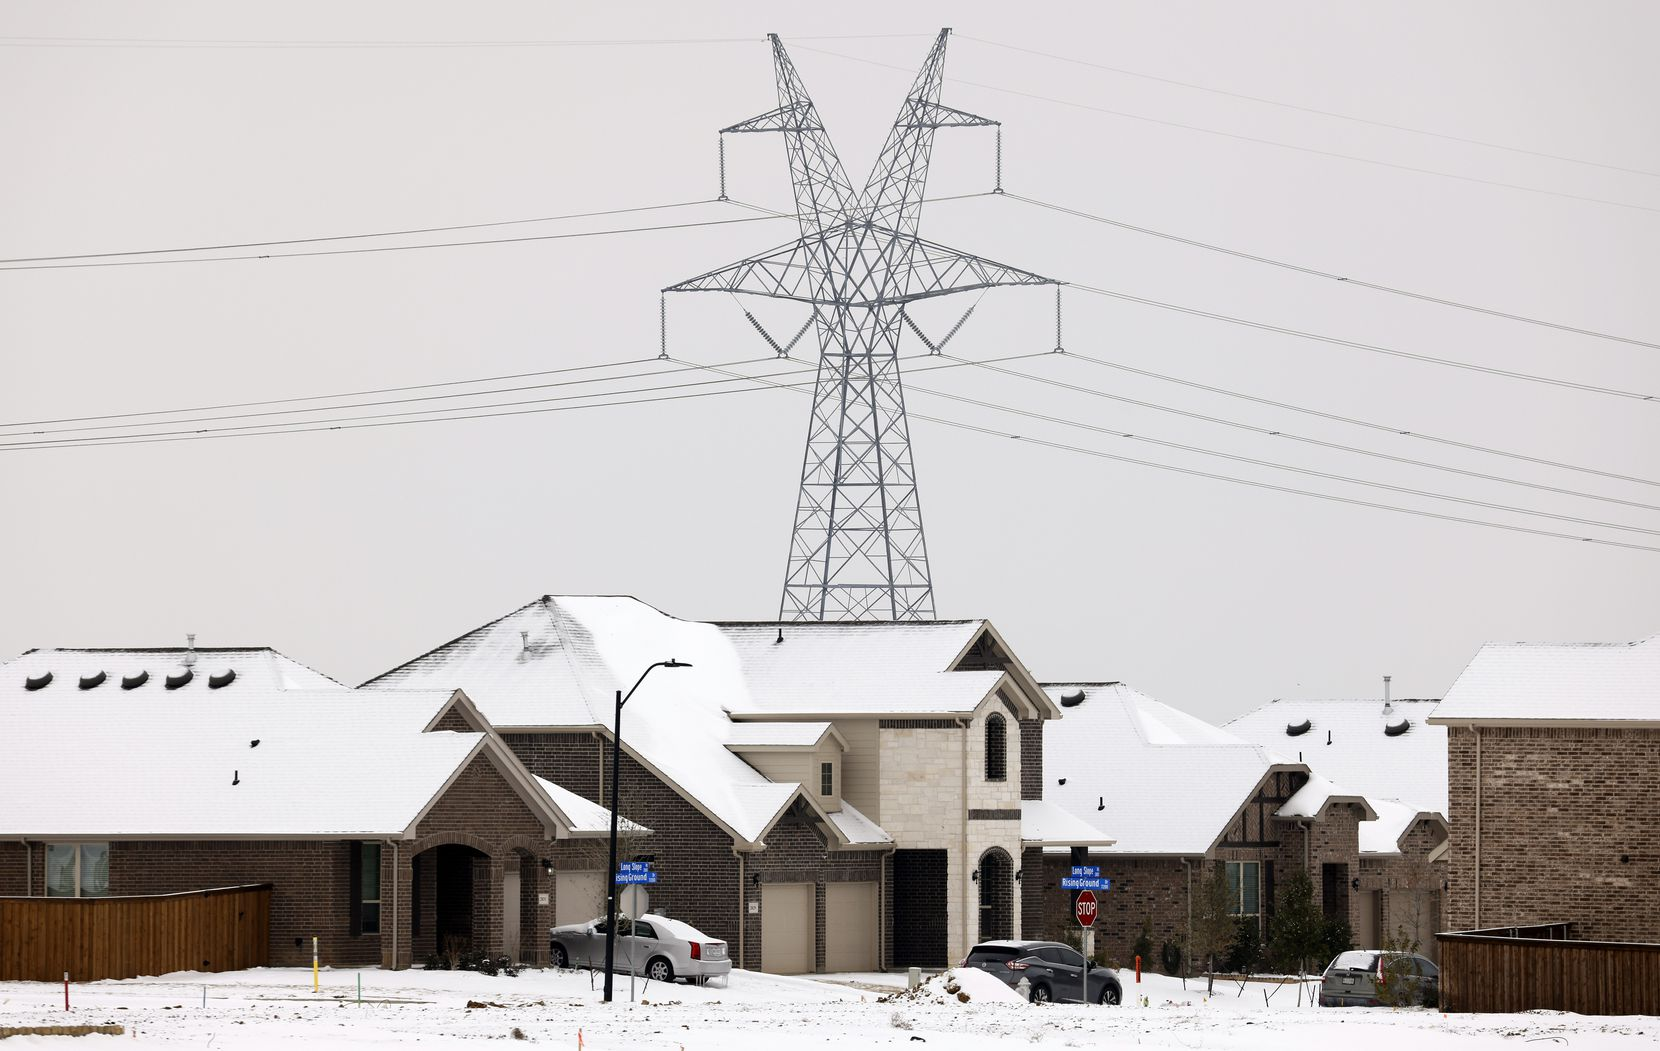 Large electrical transmission lines are seen in a new housing development in South Arlington on February 17, 2021, as rolling power outages disrupted service following a snow storm and deep freeze.